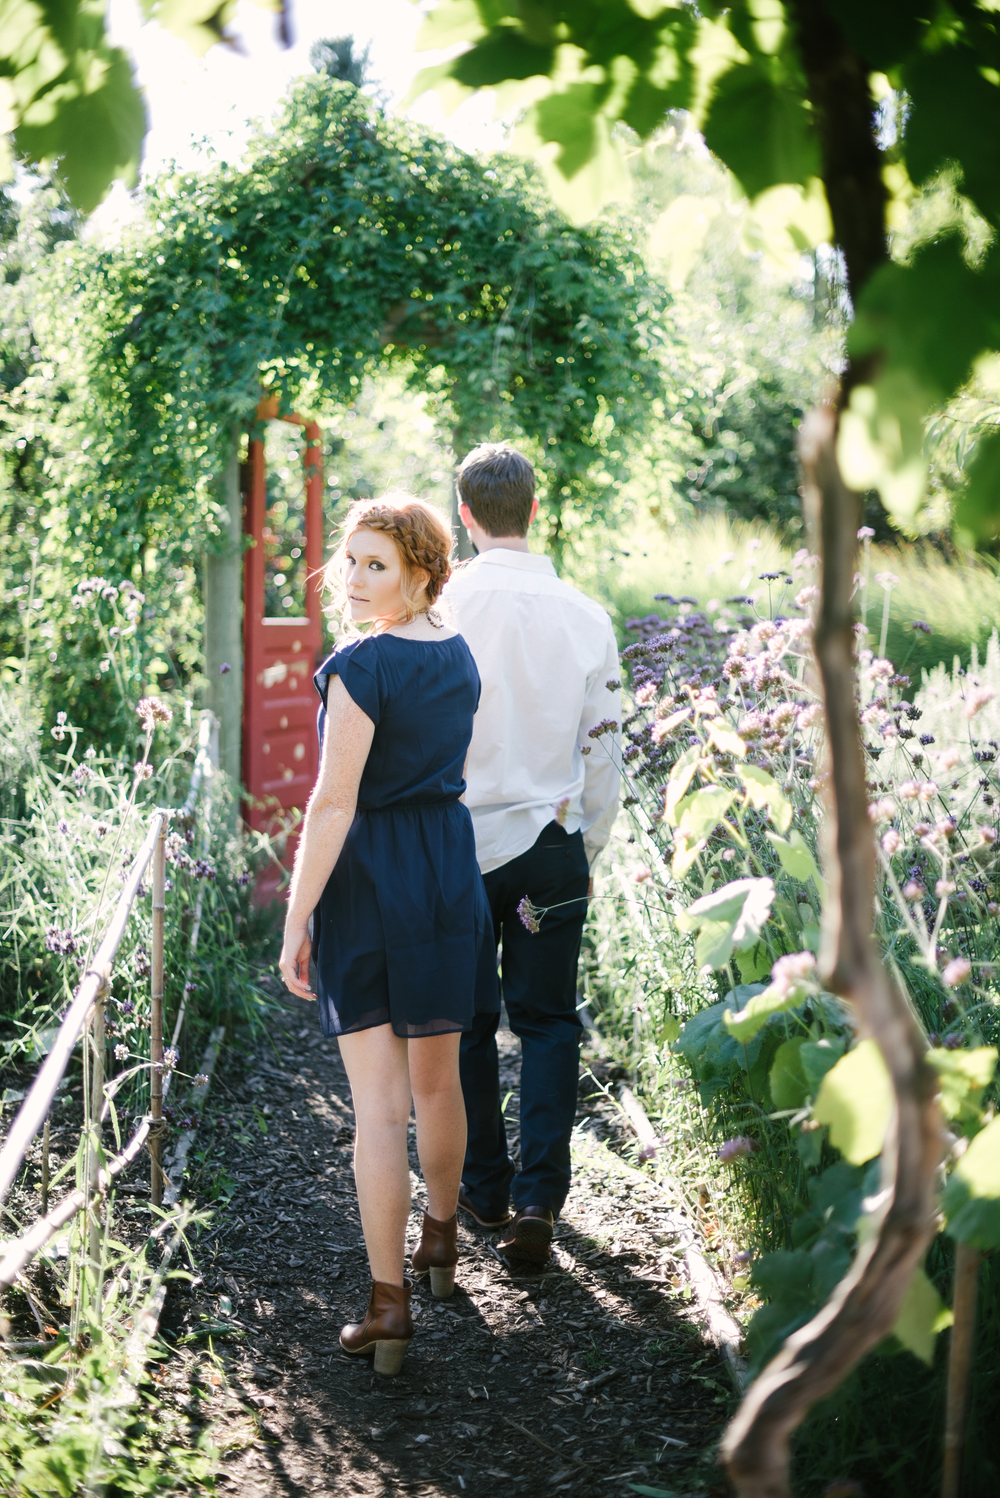 23-edgefield_engagement_fashion_photography_christa_taylor-73.jpg